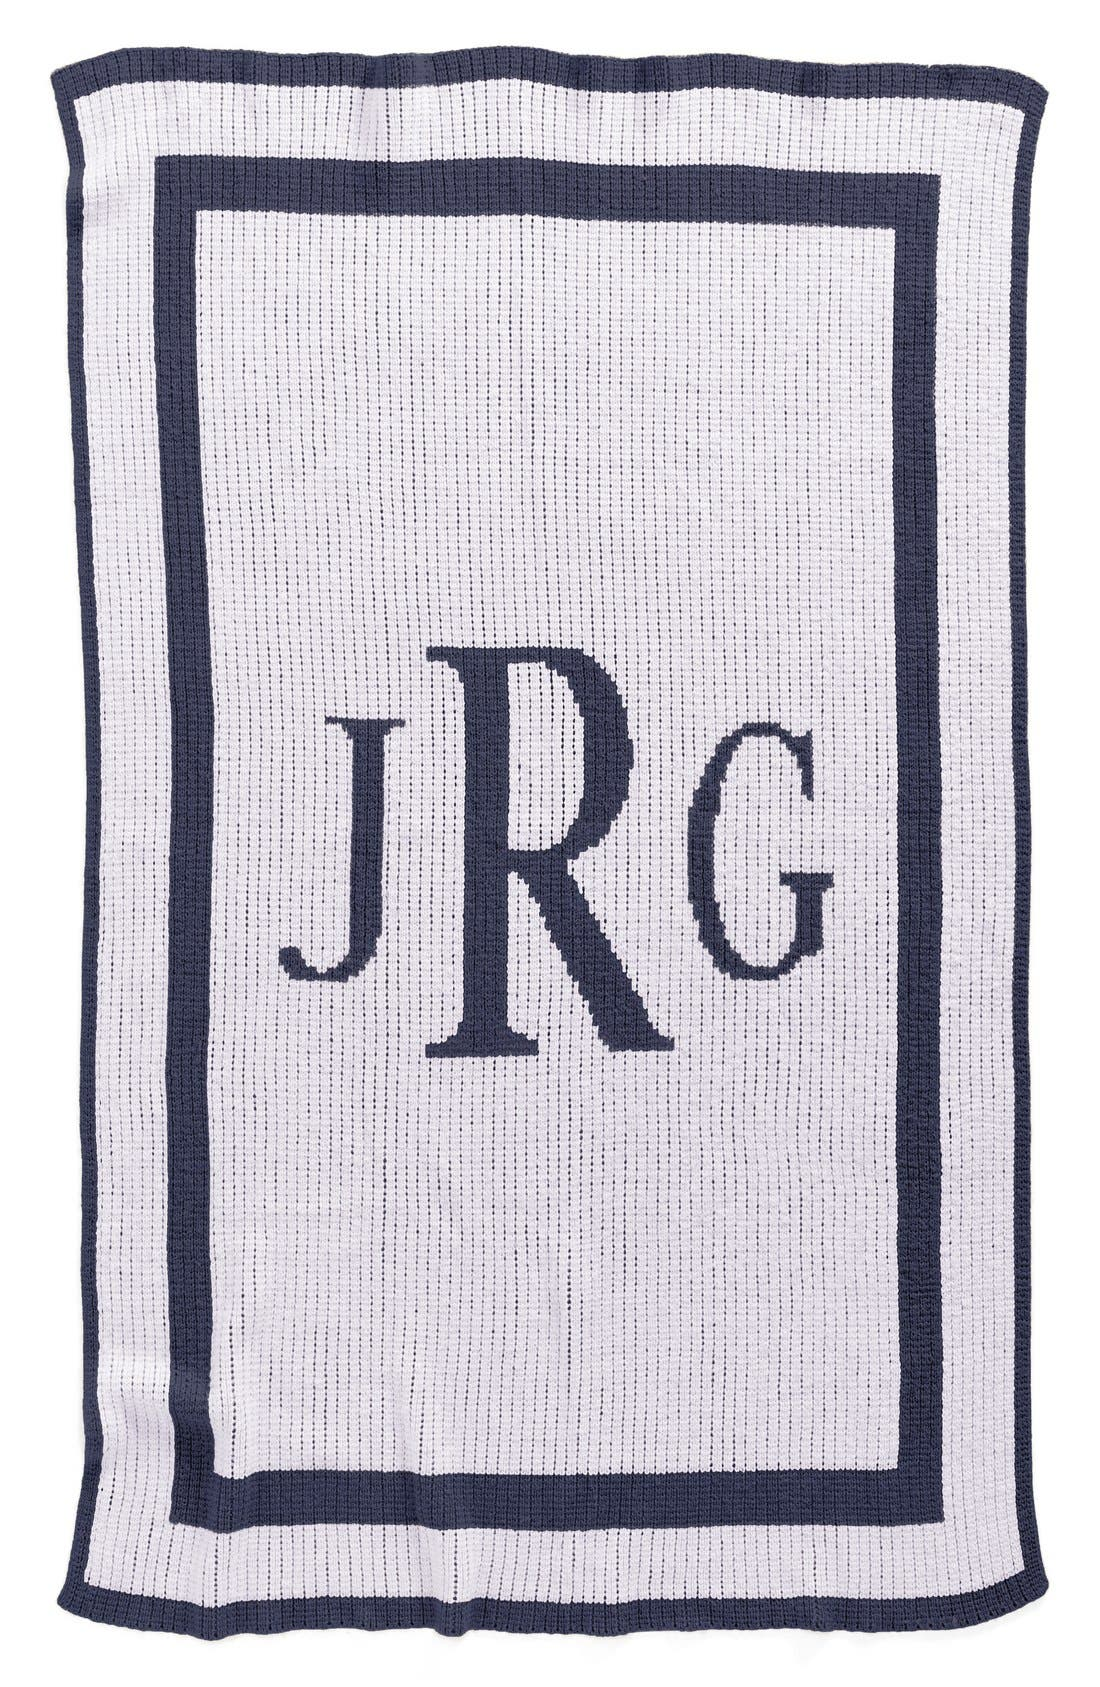 'Classic Monogram' Personalized Stroller Blanket,                             Main thumbnail 1, color,                             White/ Navy